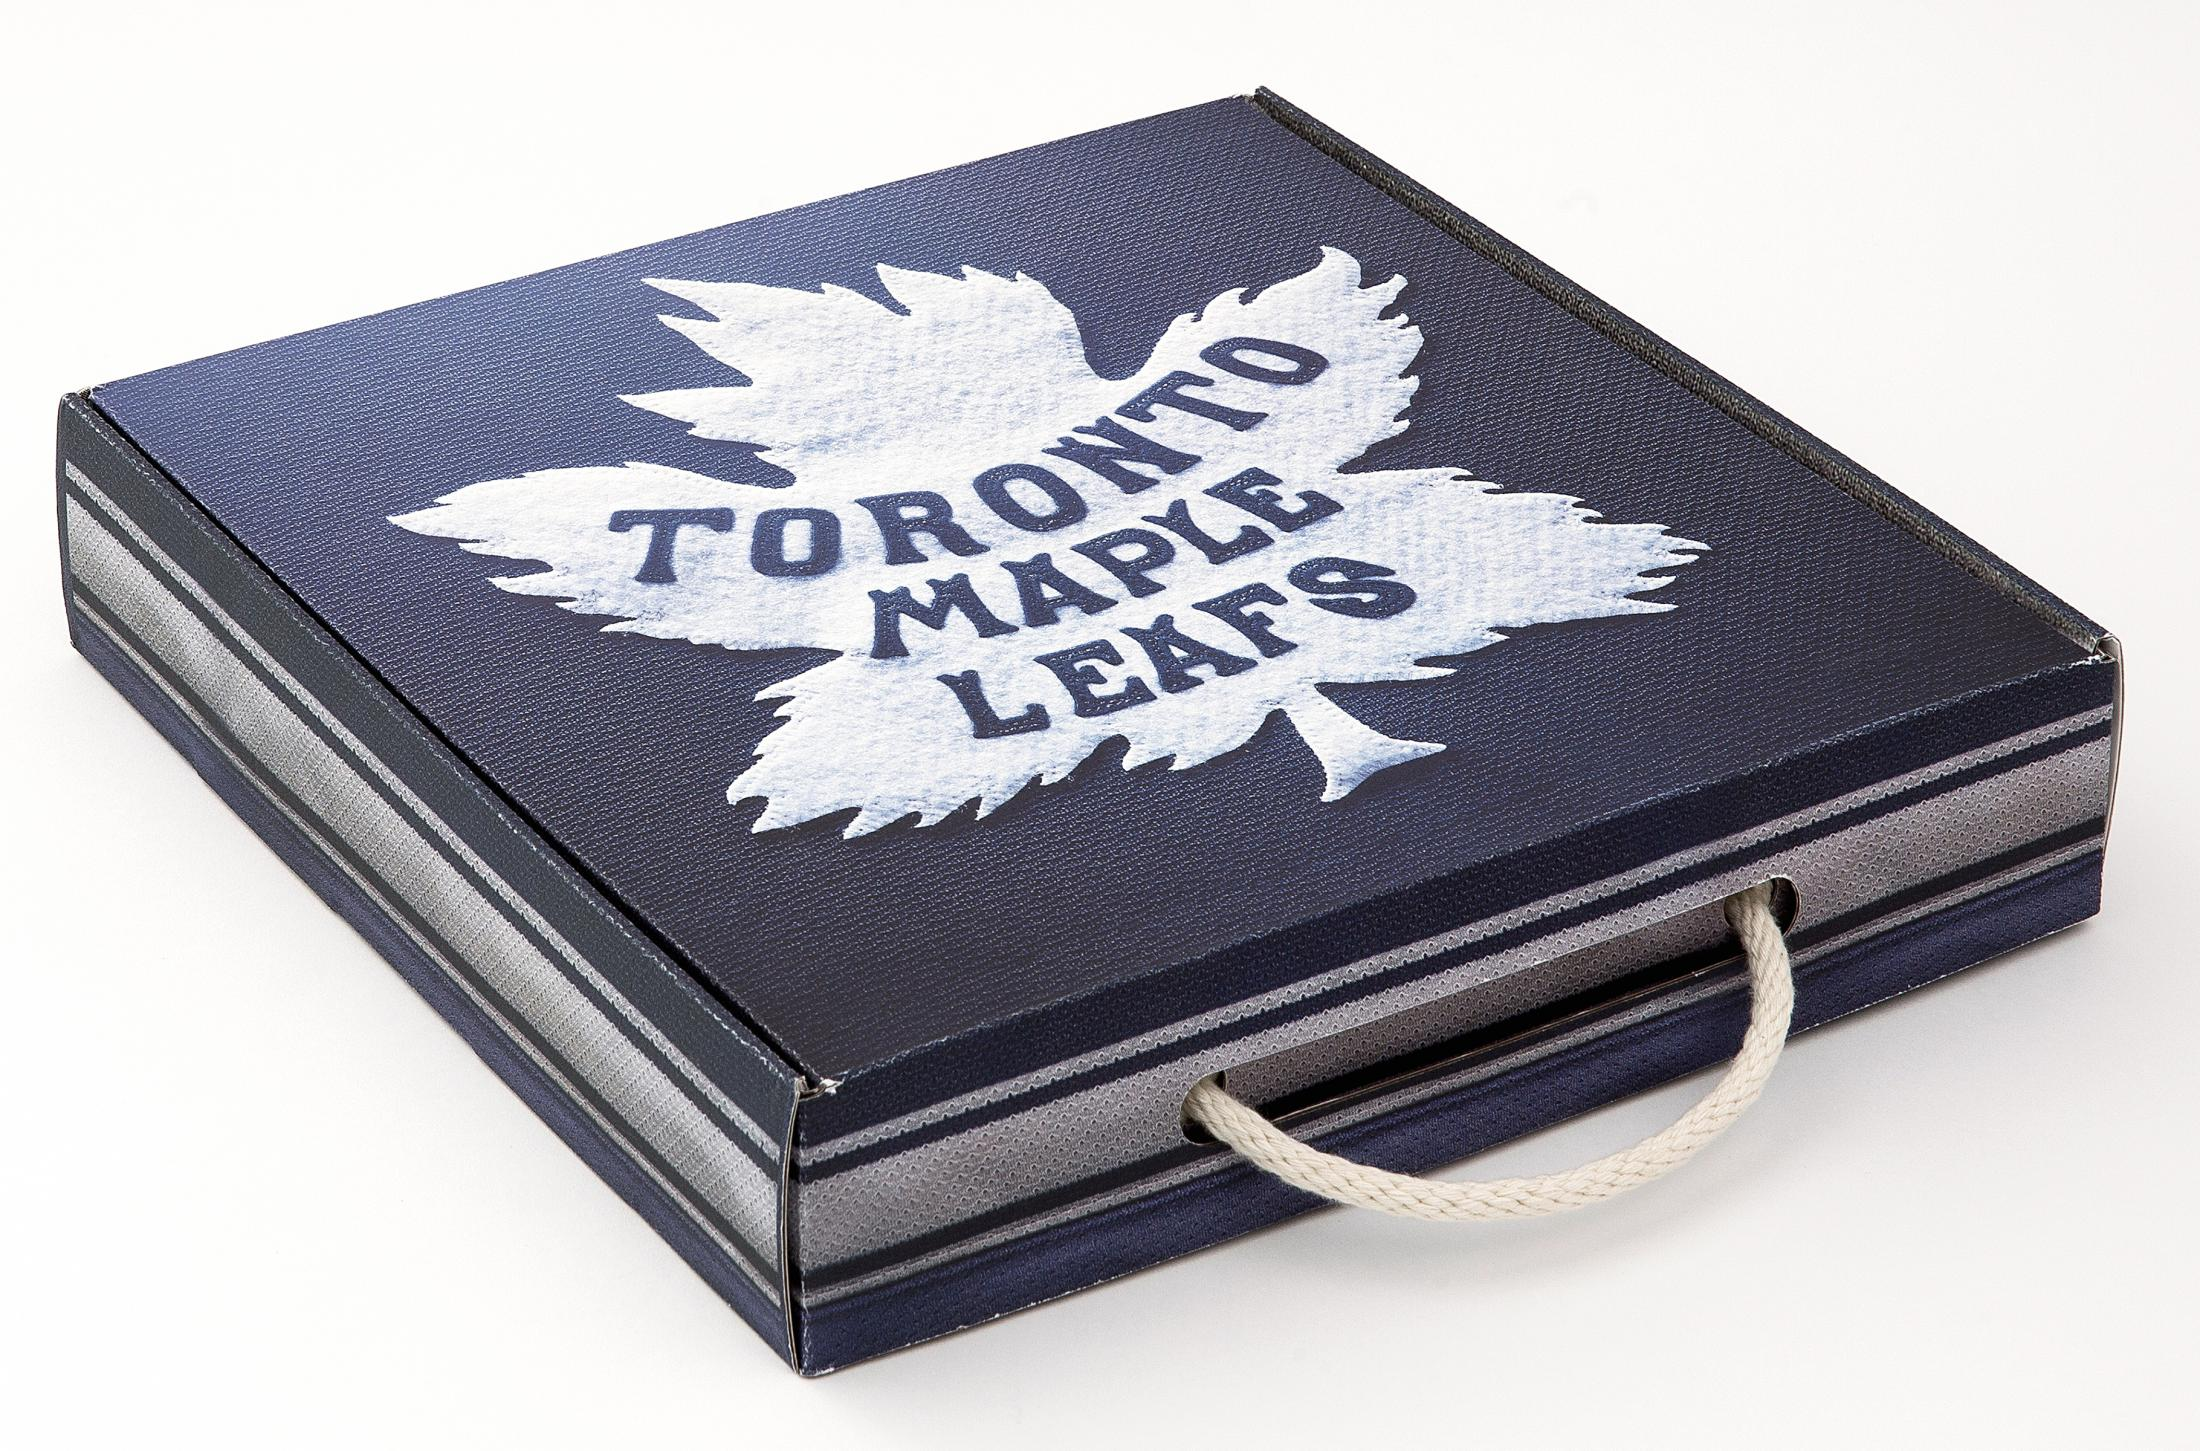 huge selection of 59ac2 7722a Toronto Maple Leafs Winter Classic Jersey Package | Clios